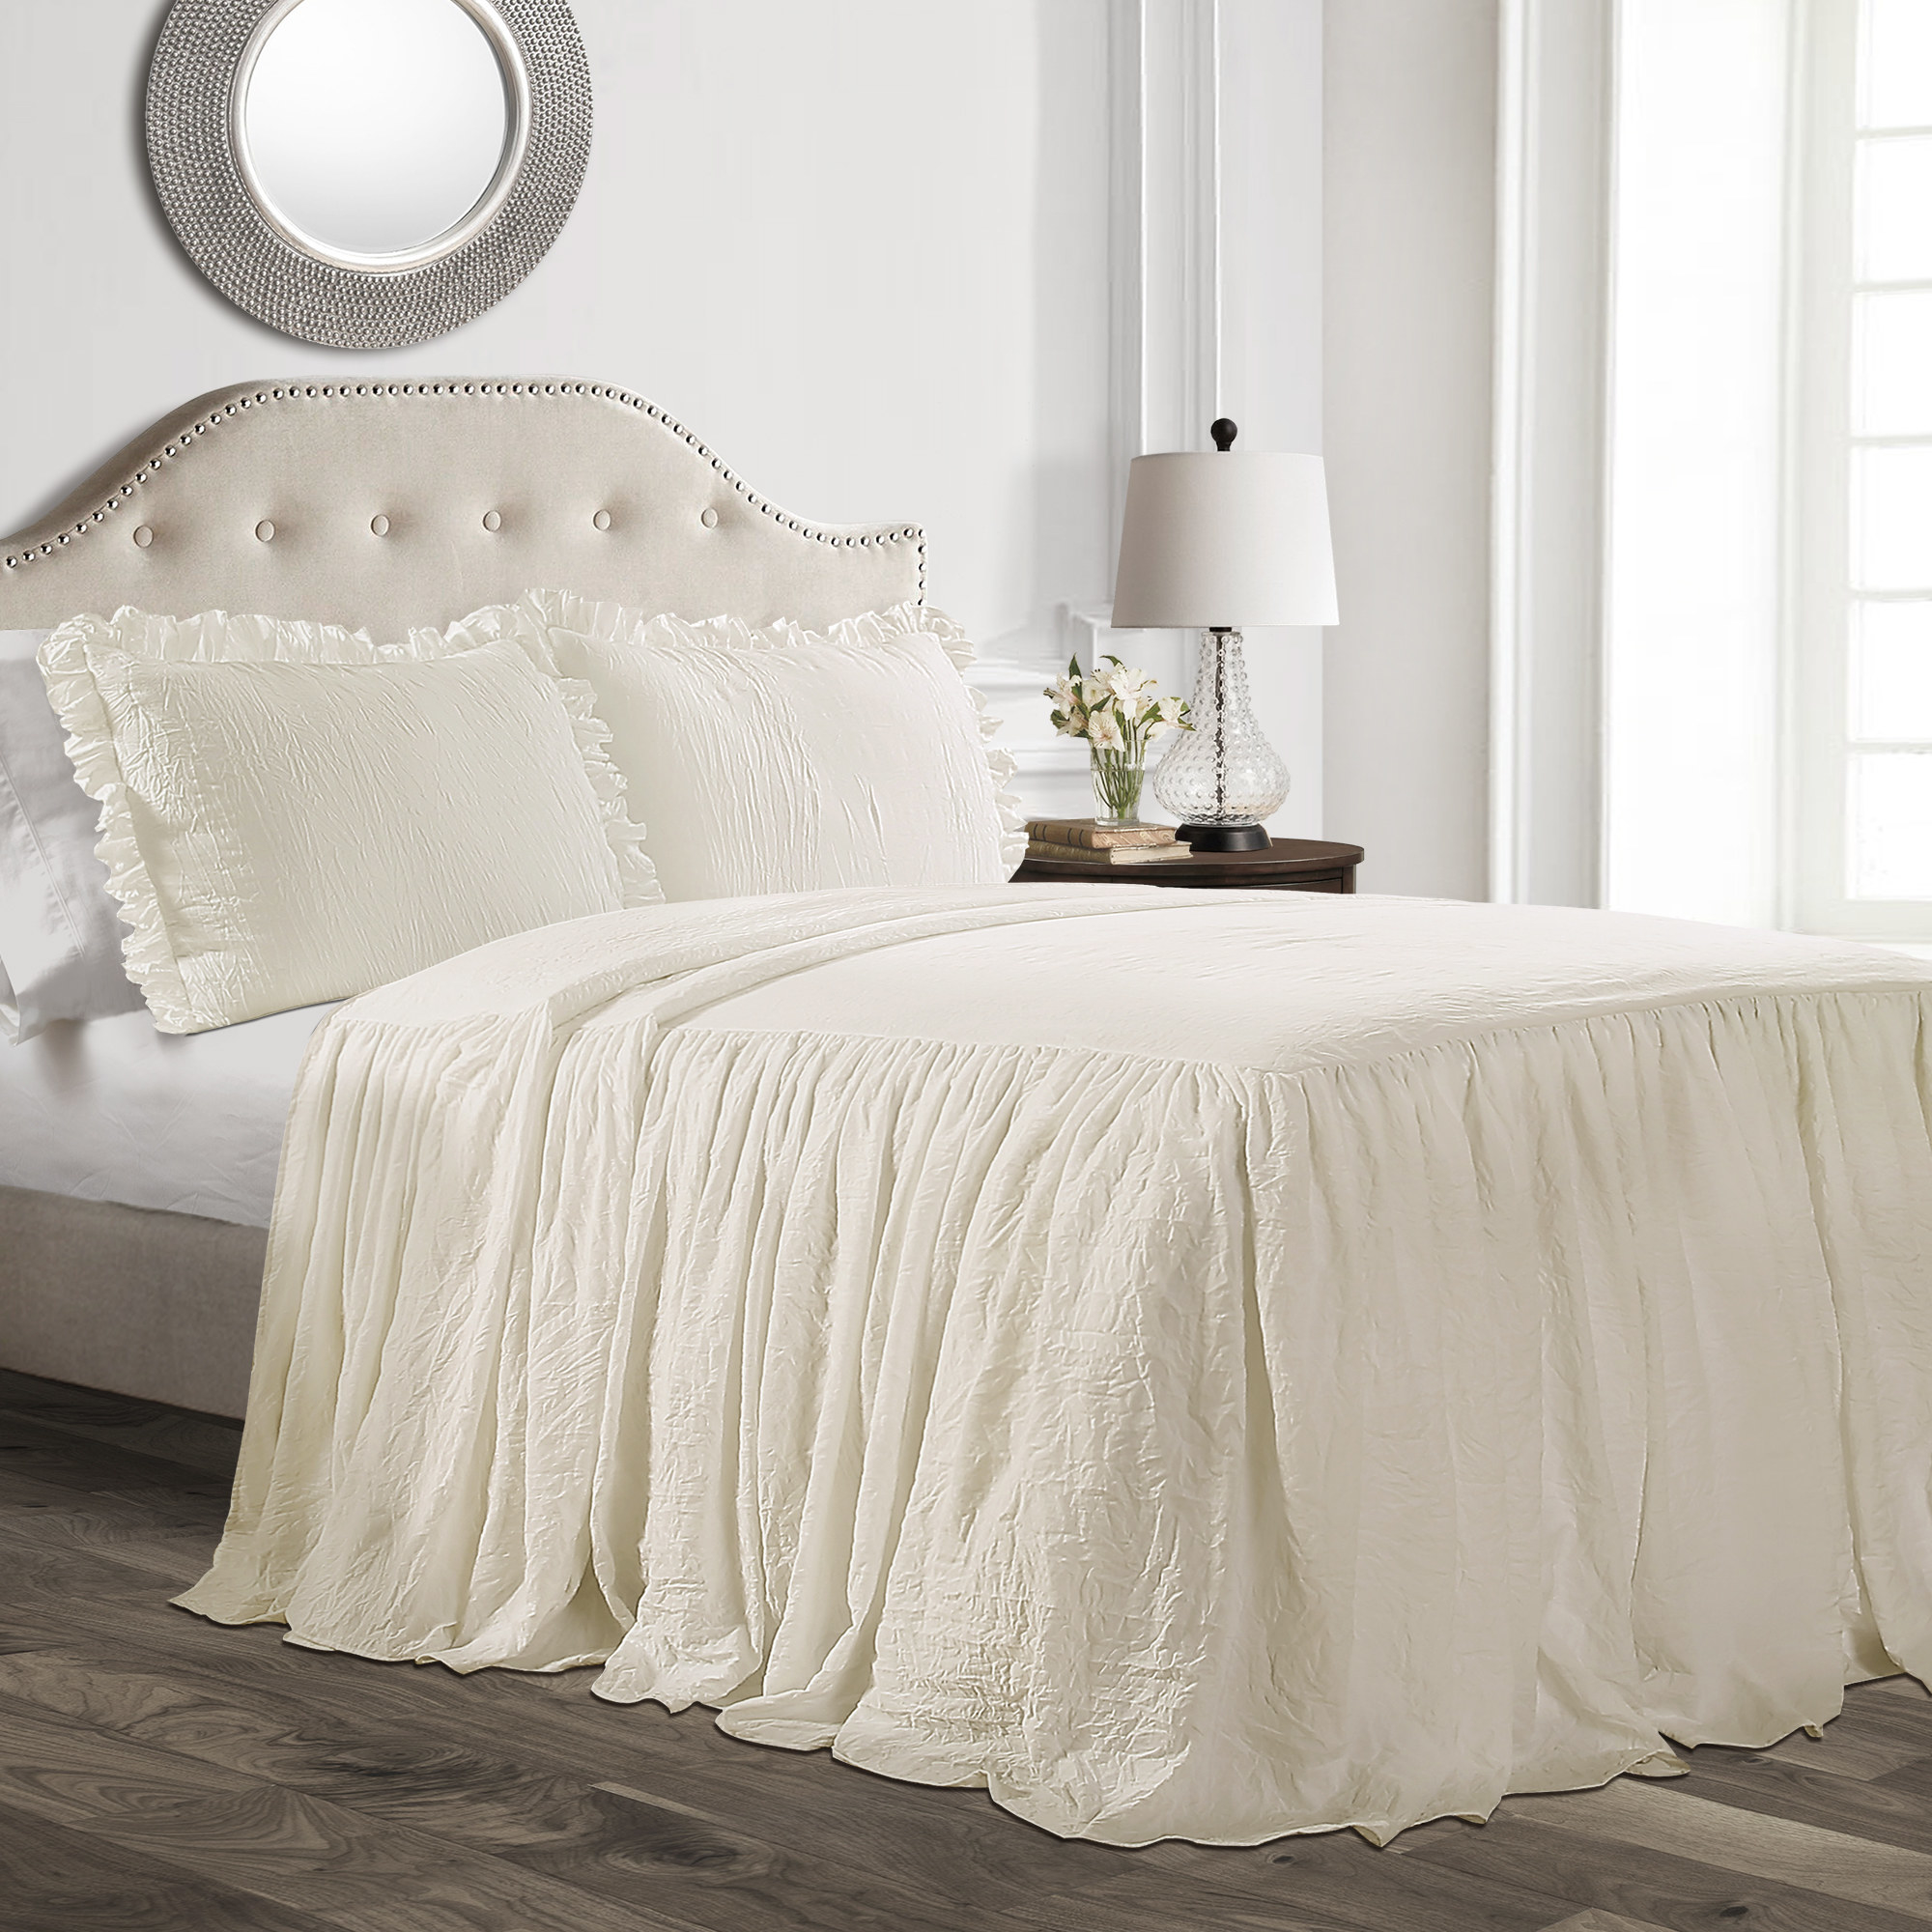 The ivory bedding set with ruffled pillow cases